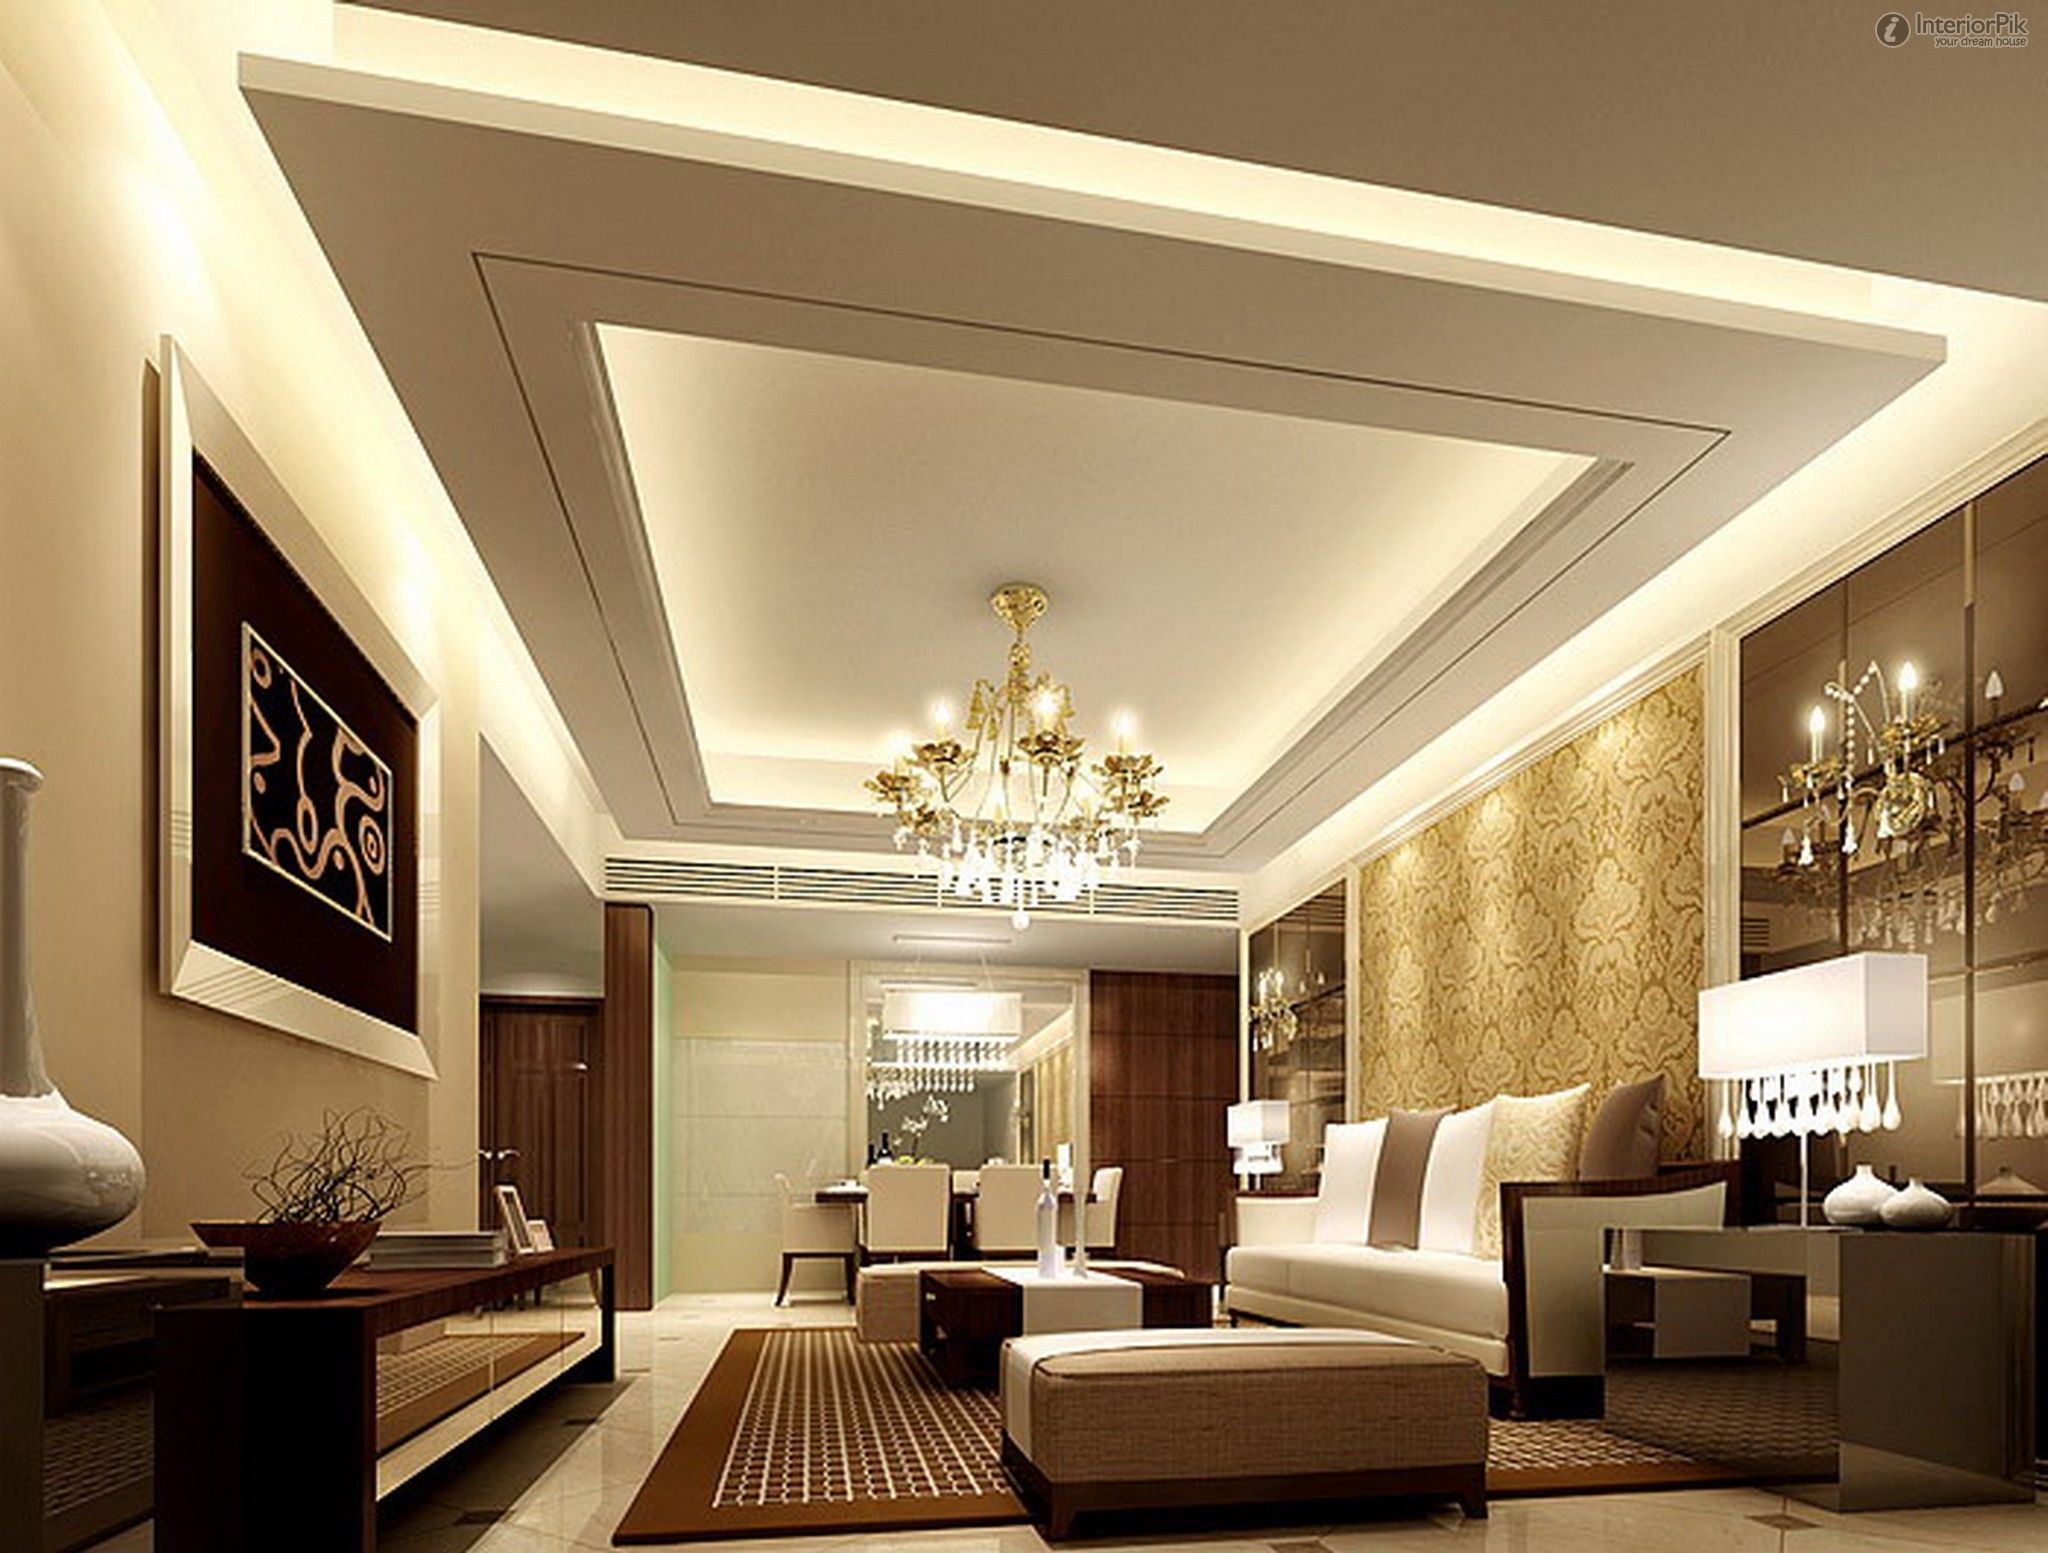 Vaulted Living Room Ideas House Ceiling Design Simple False Ceiling Design Pop False Ceiling Design